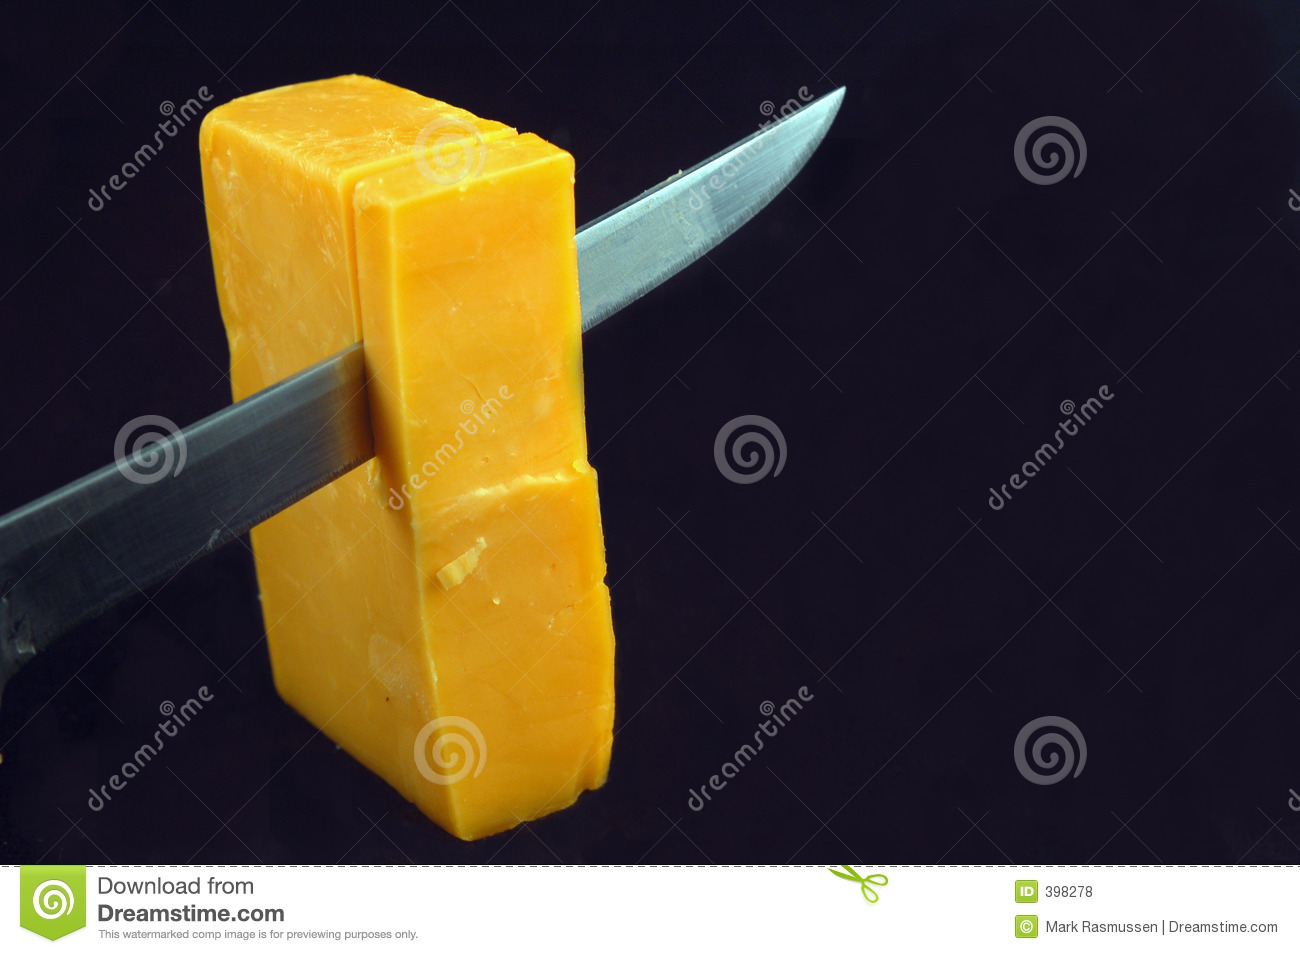 Couper le fromage